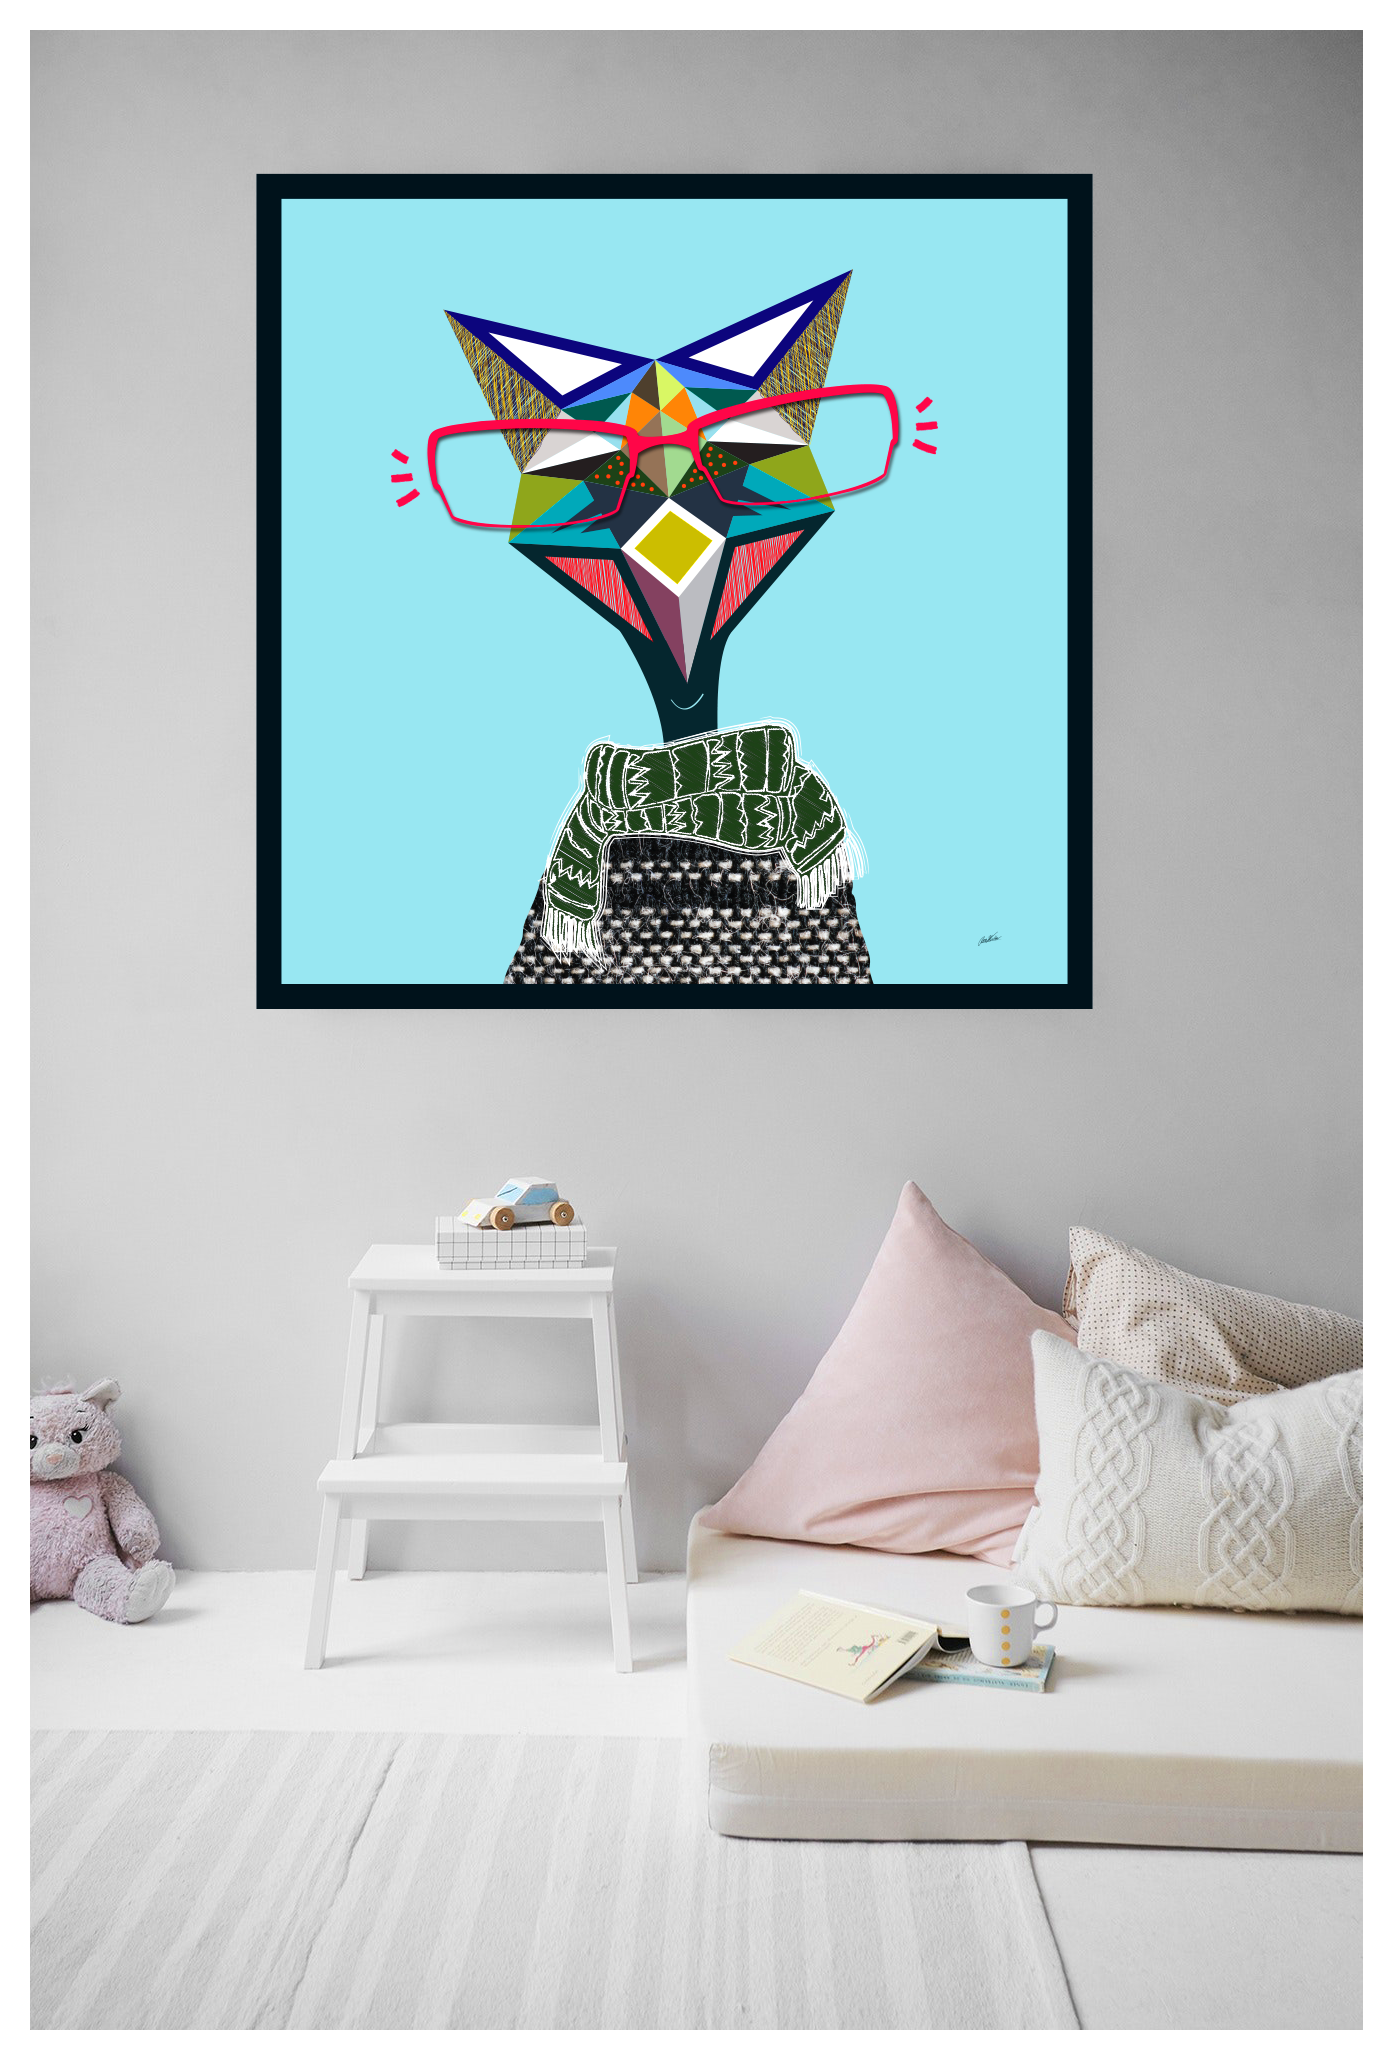 happy-pussy-artwork-by-rene-winther-no-frame.png